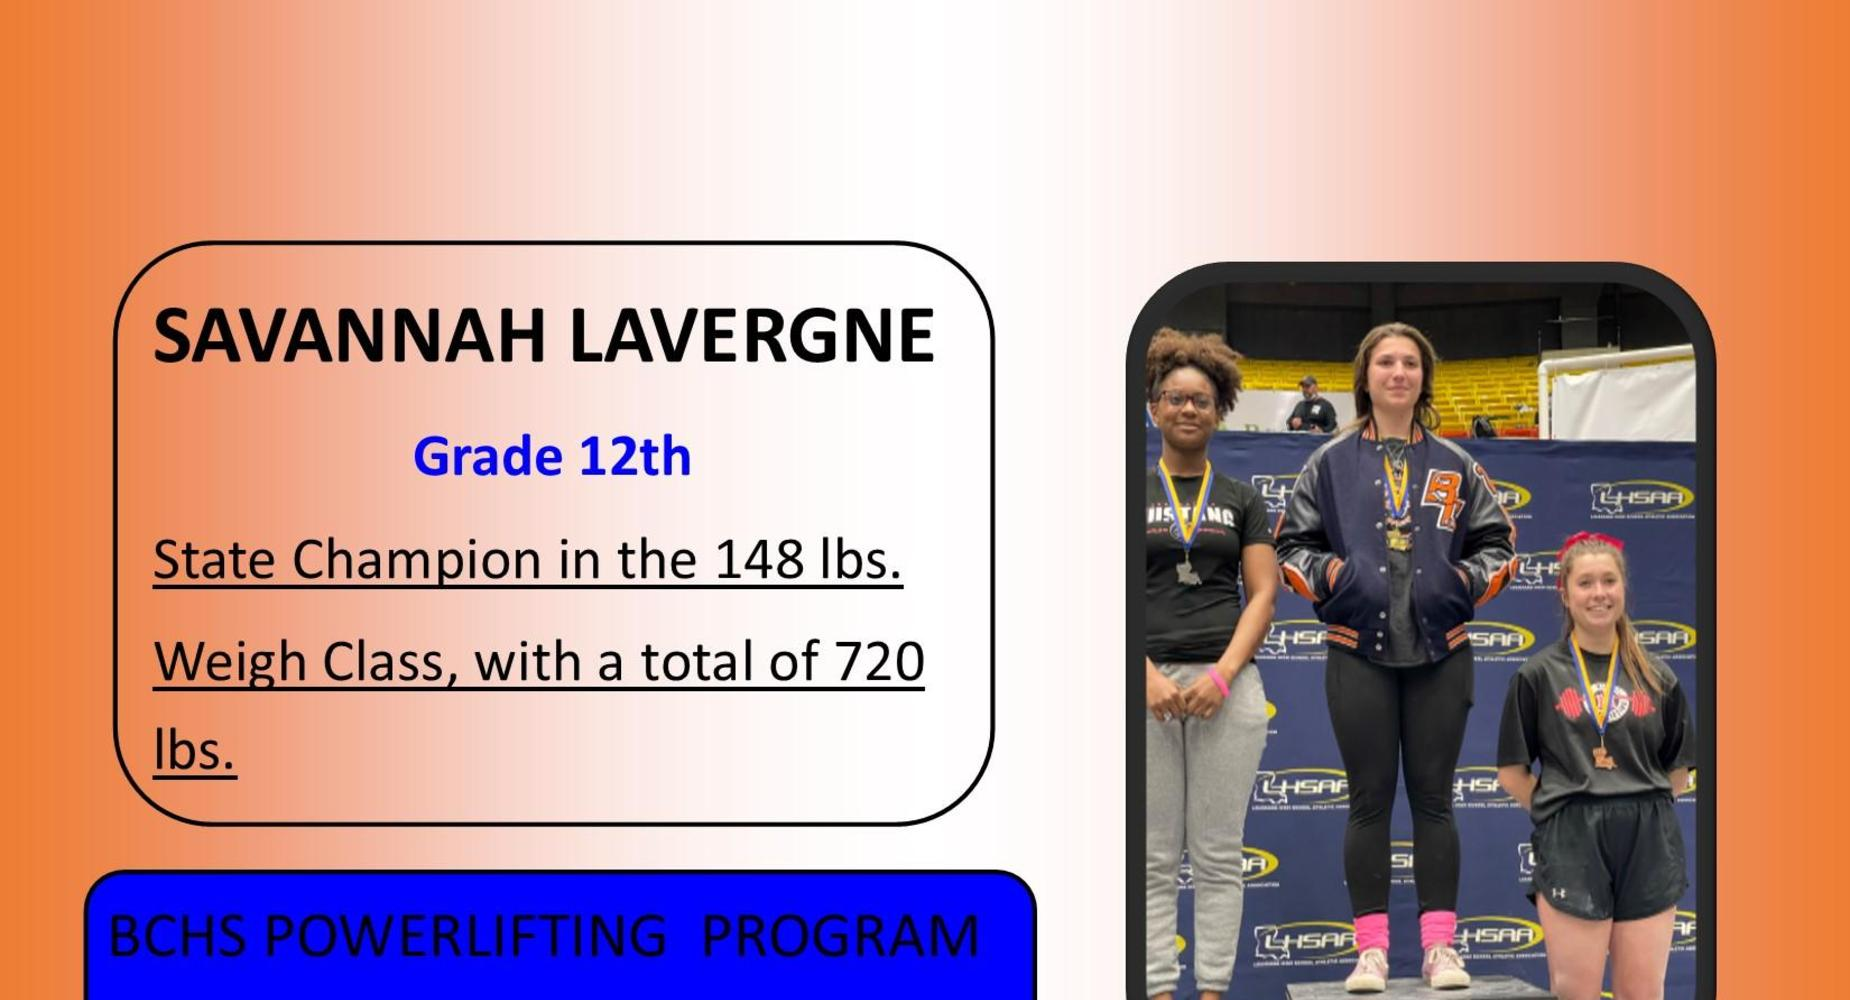 Savannah Lavergne - Powerlifting Results